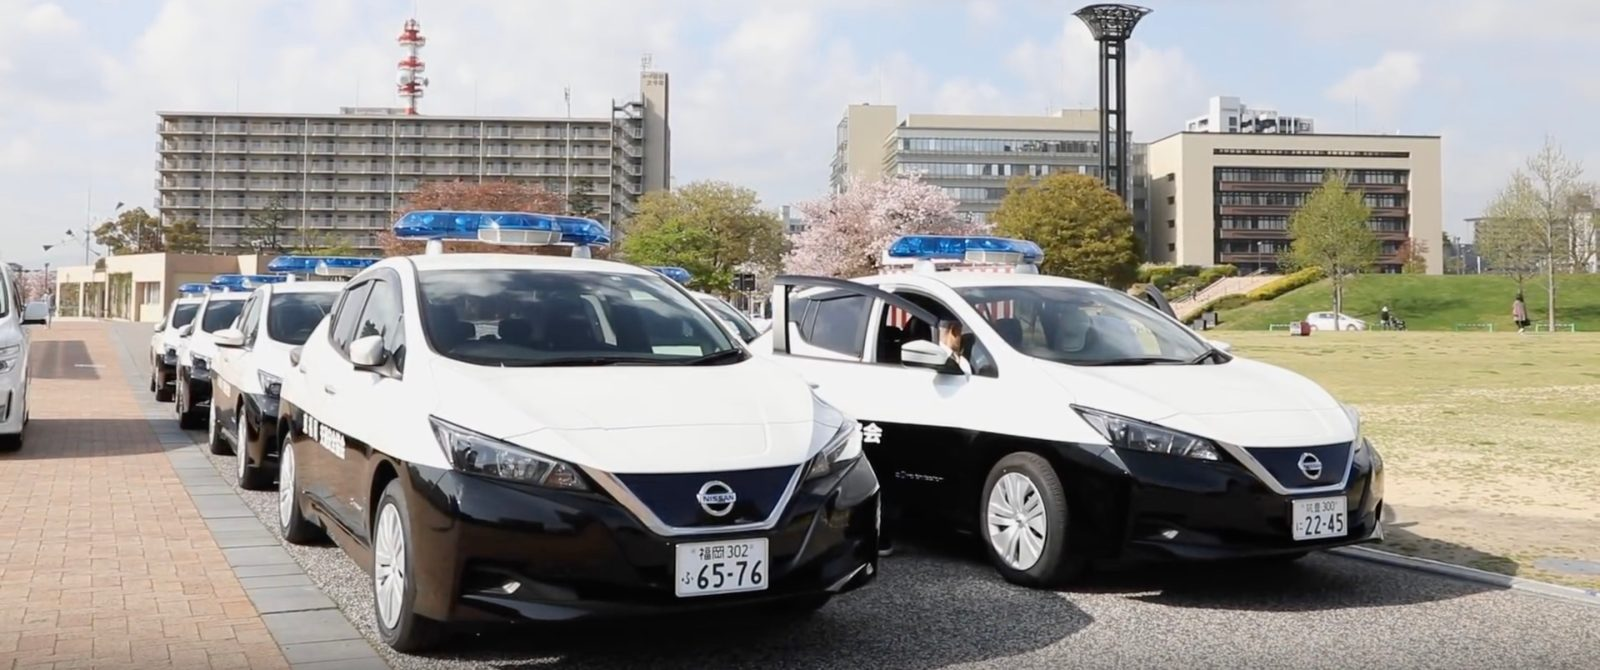 A Fleet Of New All Electric Nissan Leafs Has Been Turned Into Police Vehicles In An